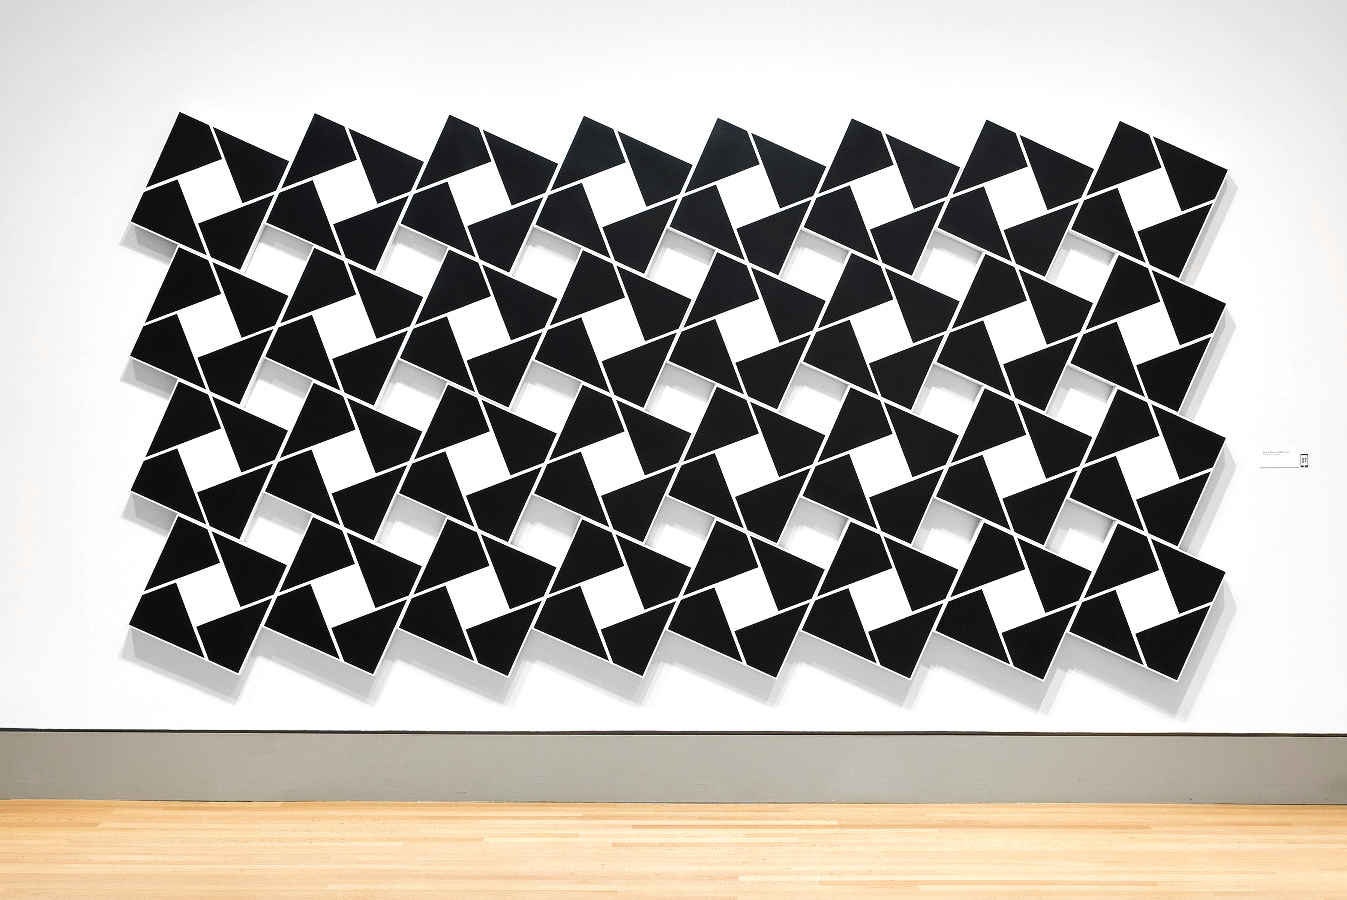 Ajlun I: Black Pearl   2002. Acrylic on 32 canvases. 80 x 168 in., 203.2 x 426.7 cm.